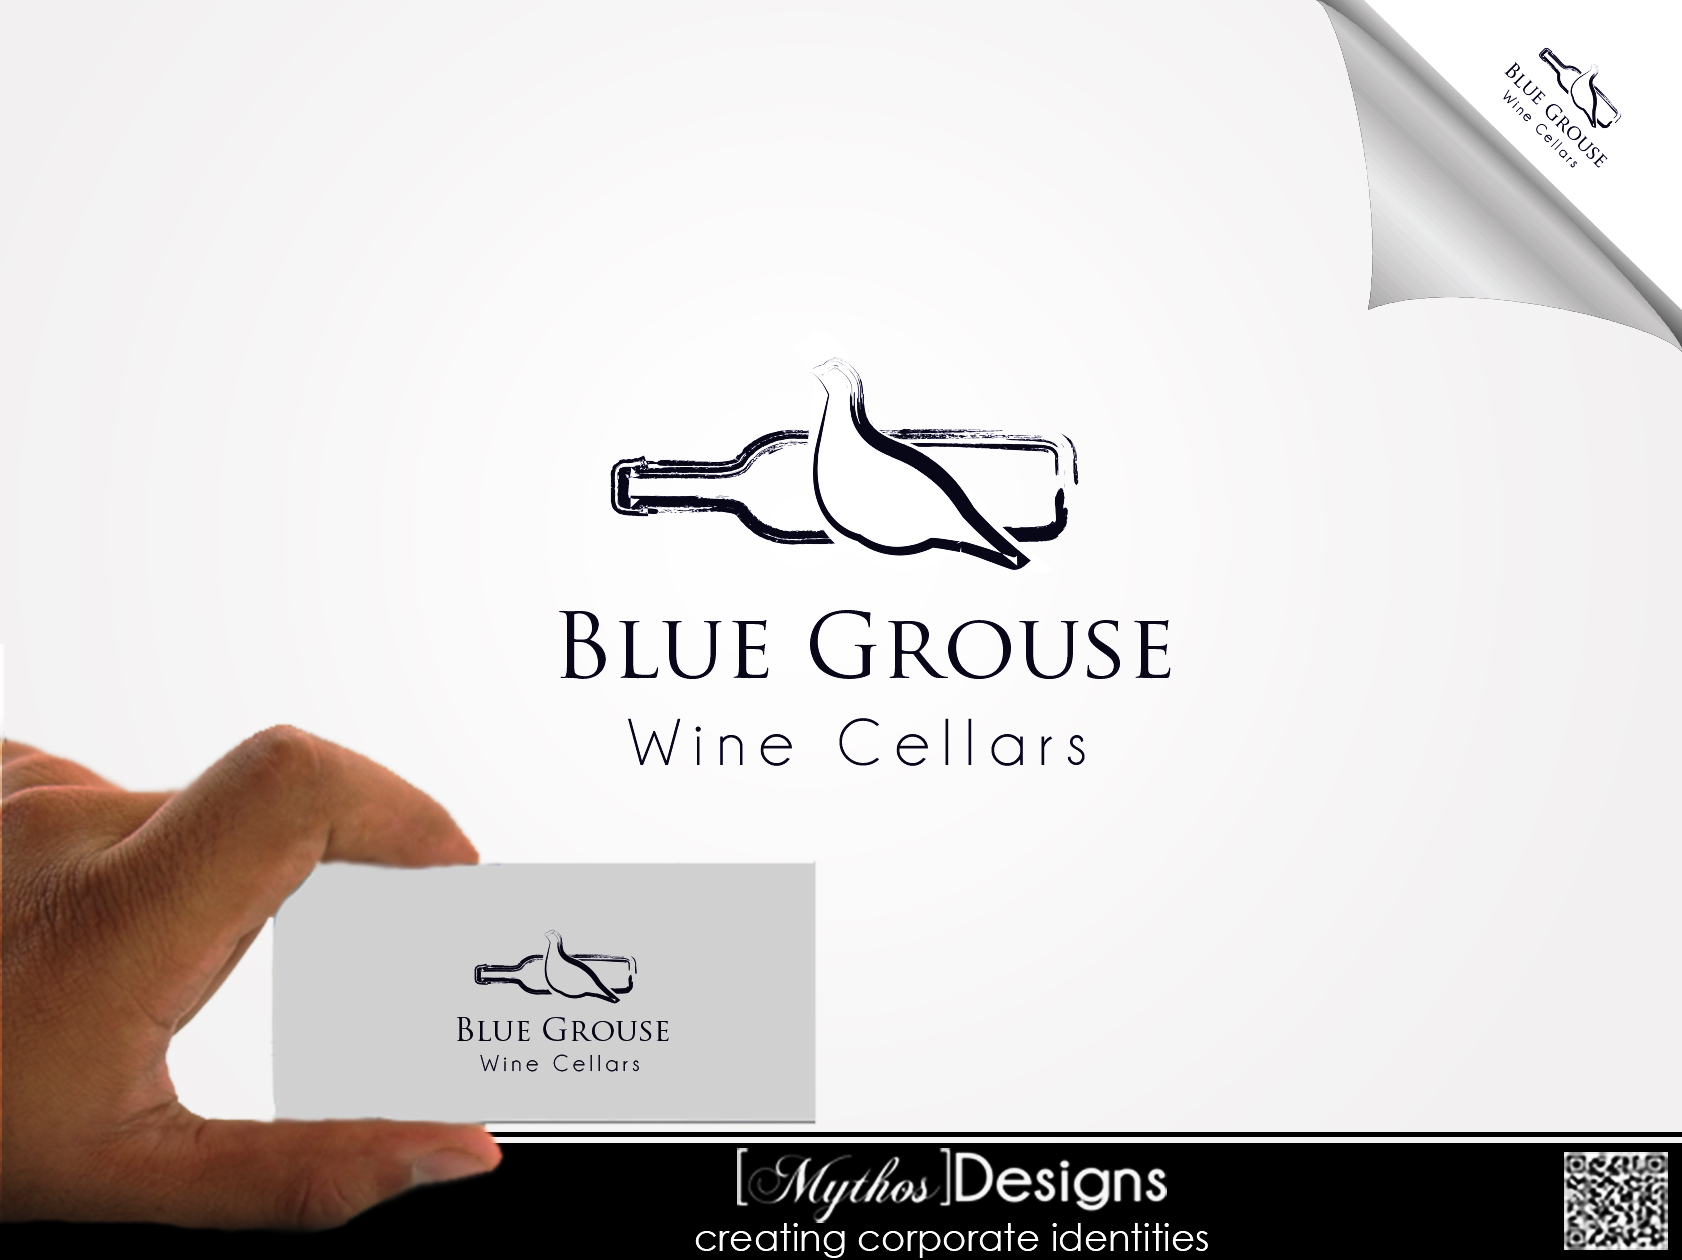 Logo Design by Mythos Designs - Entry No. 35 in the Logo Design Contest Creative Logo Design for Blue Grouse Wine Cellars.